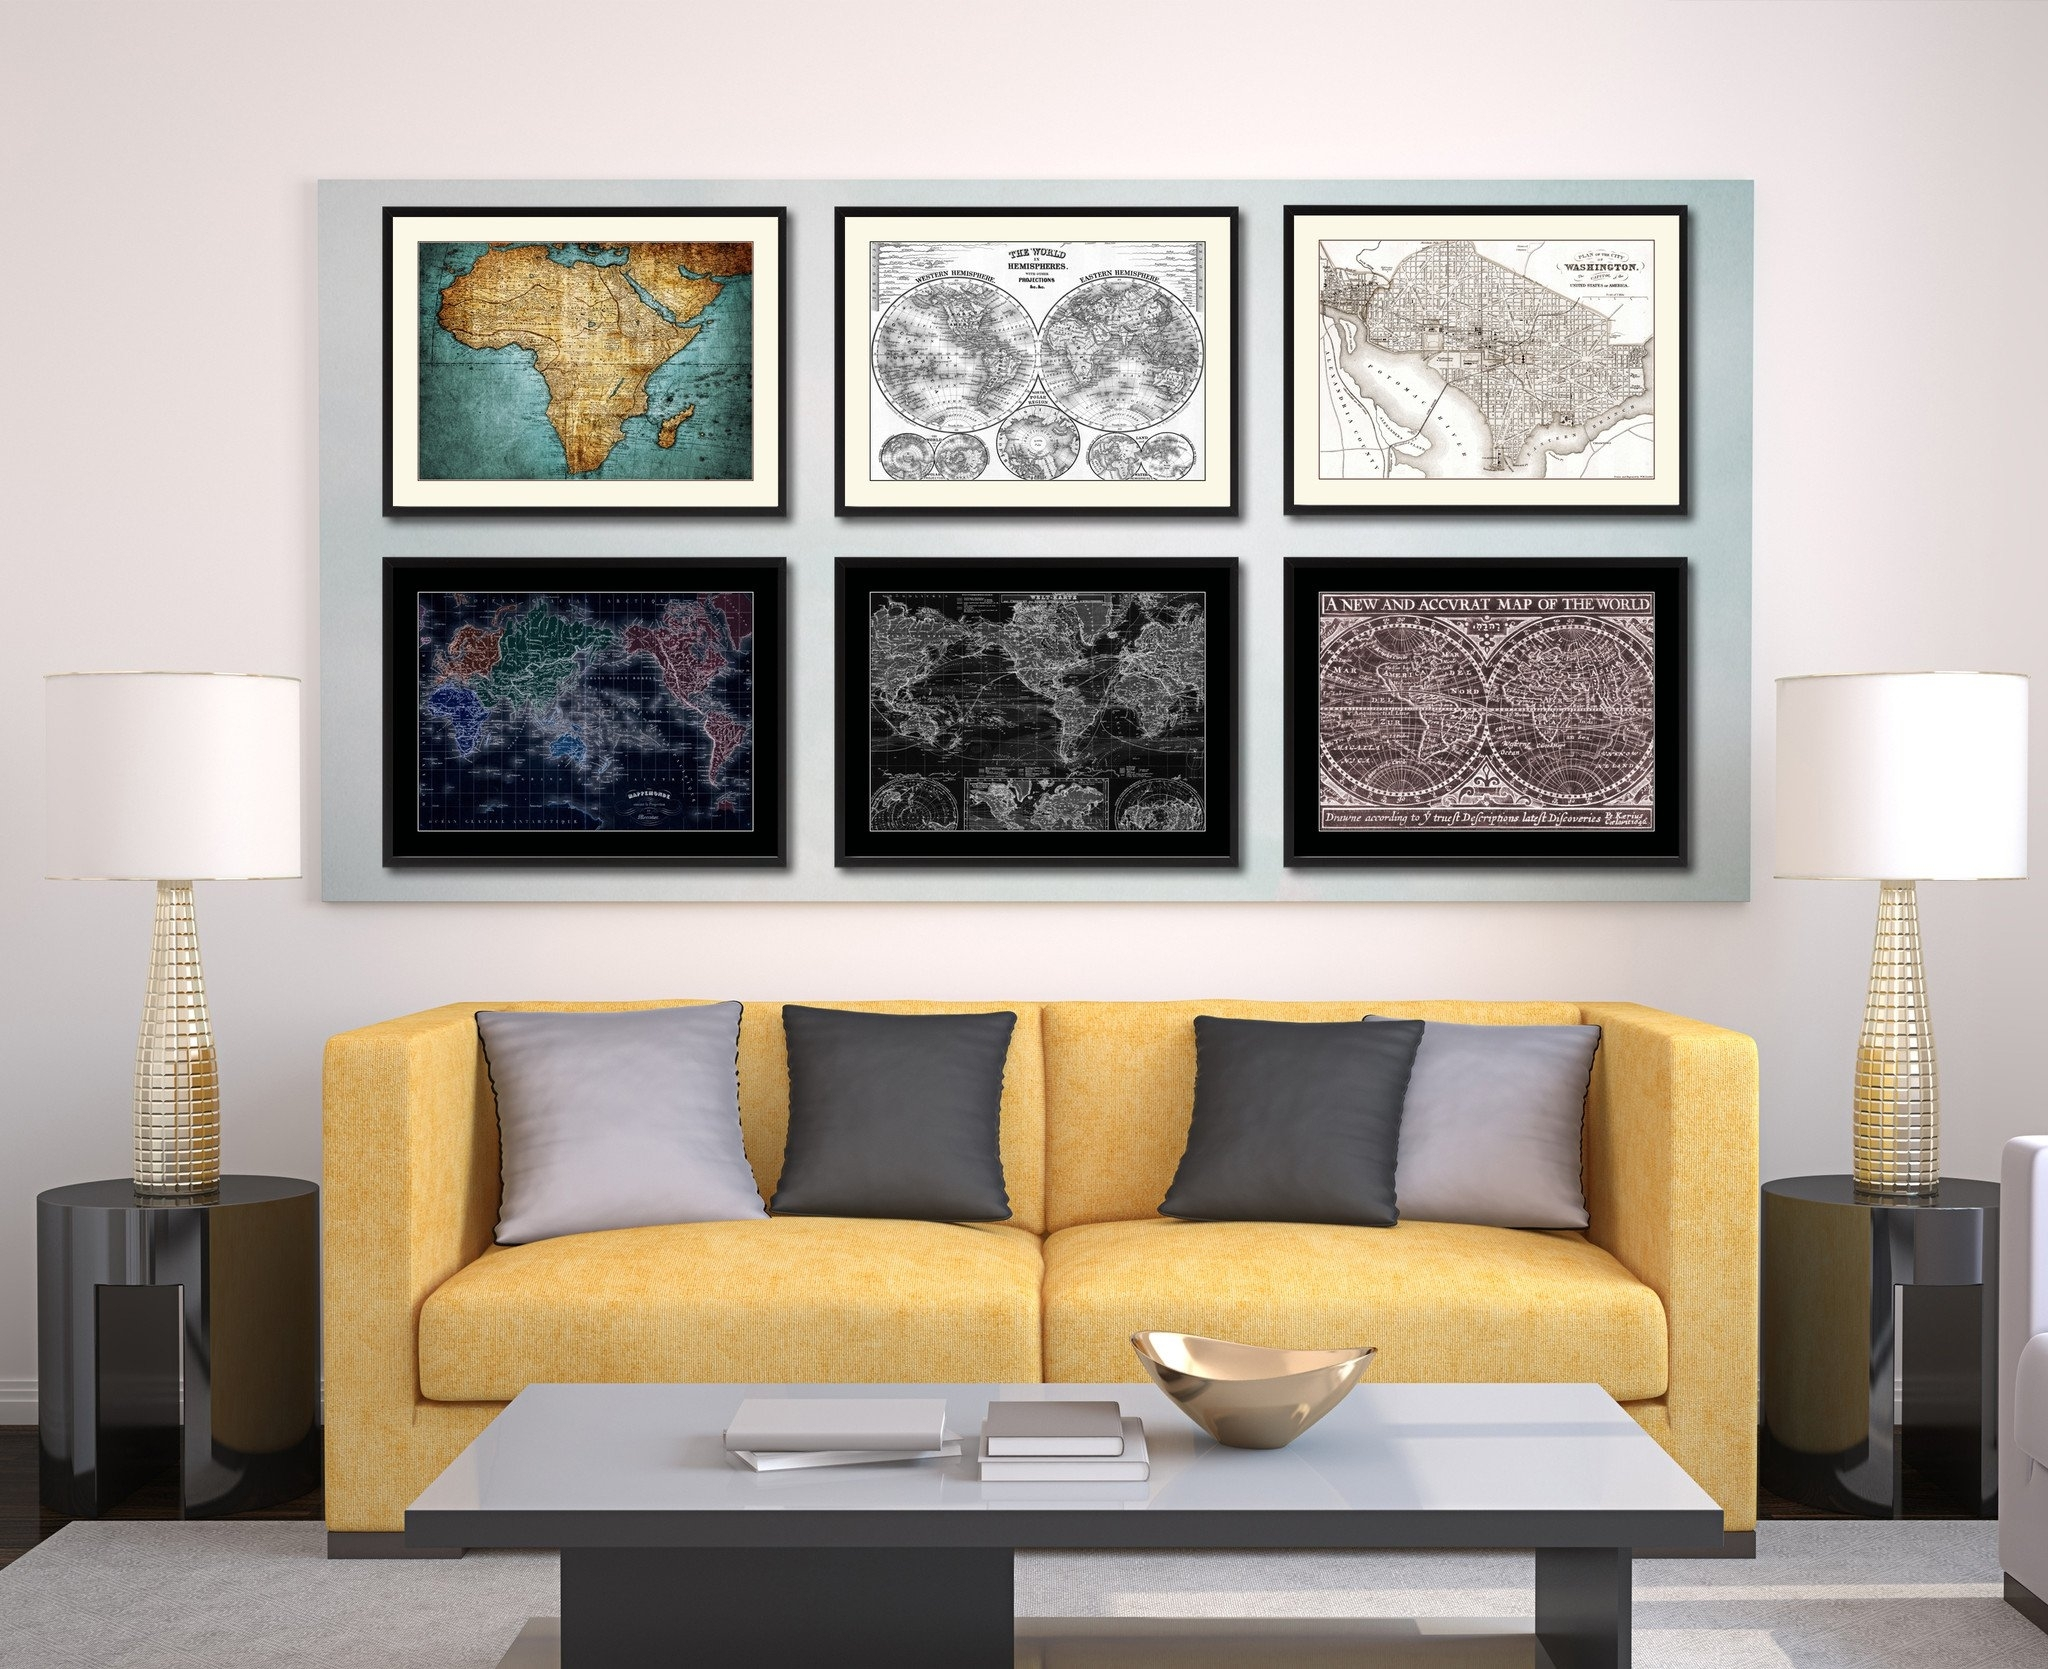 40 Sweet Inspiration Washington Dc Wall Art | Panfan Site In 2018 Washington Dc Framed Art Prints (View 1 of 15)